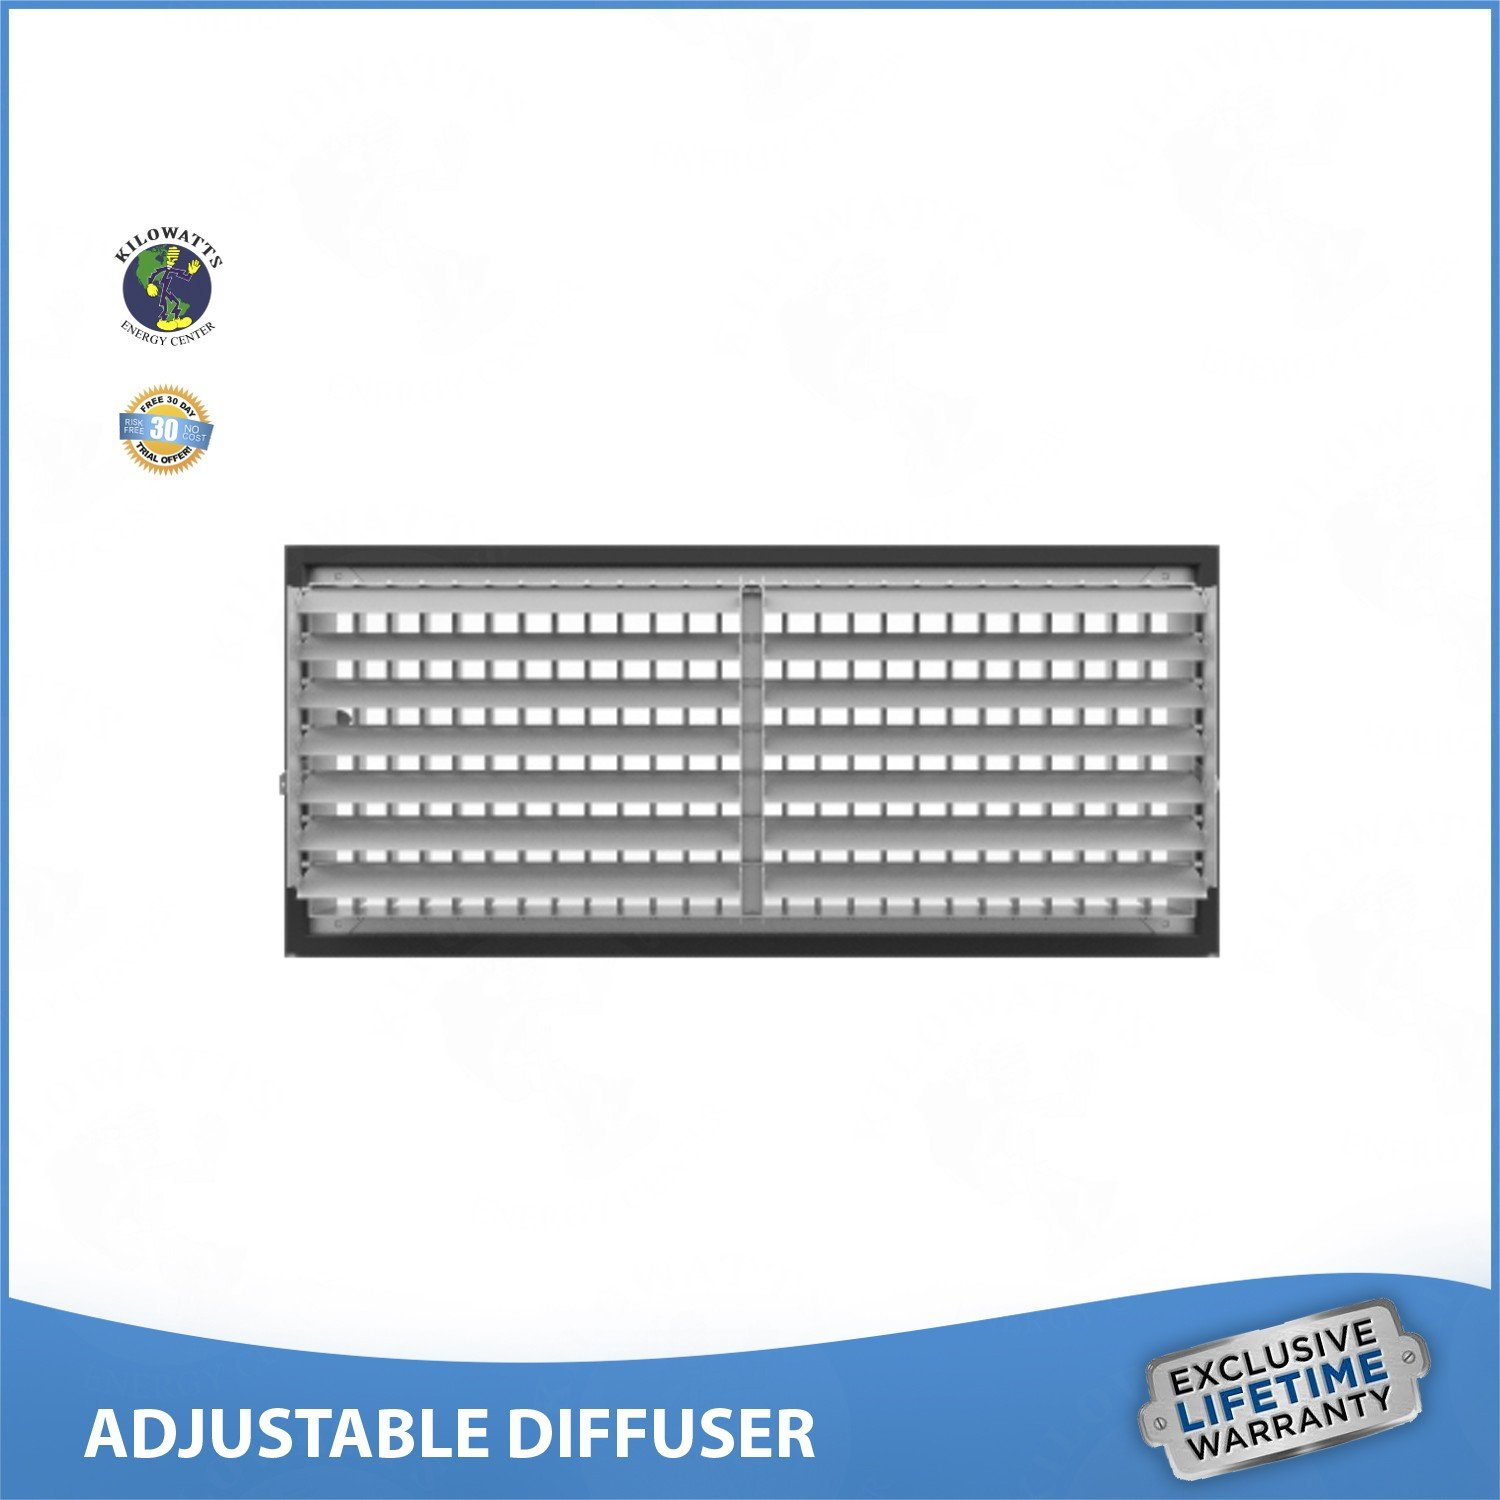 16''w x 6''h ADJUSTABLE DIFFUSER - Vent Duct Cover - Grille Register - Sidewall or Ceiling - High Airflow by Kilowatts Energy Center (Image #2)